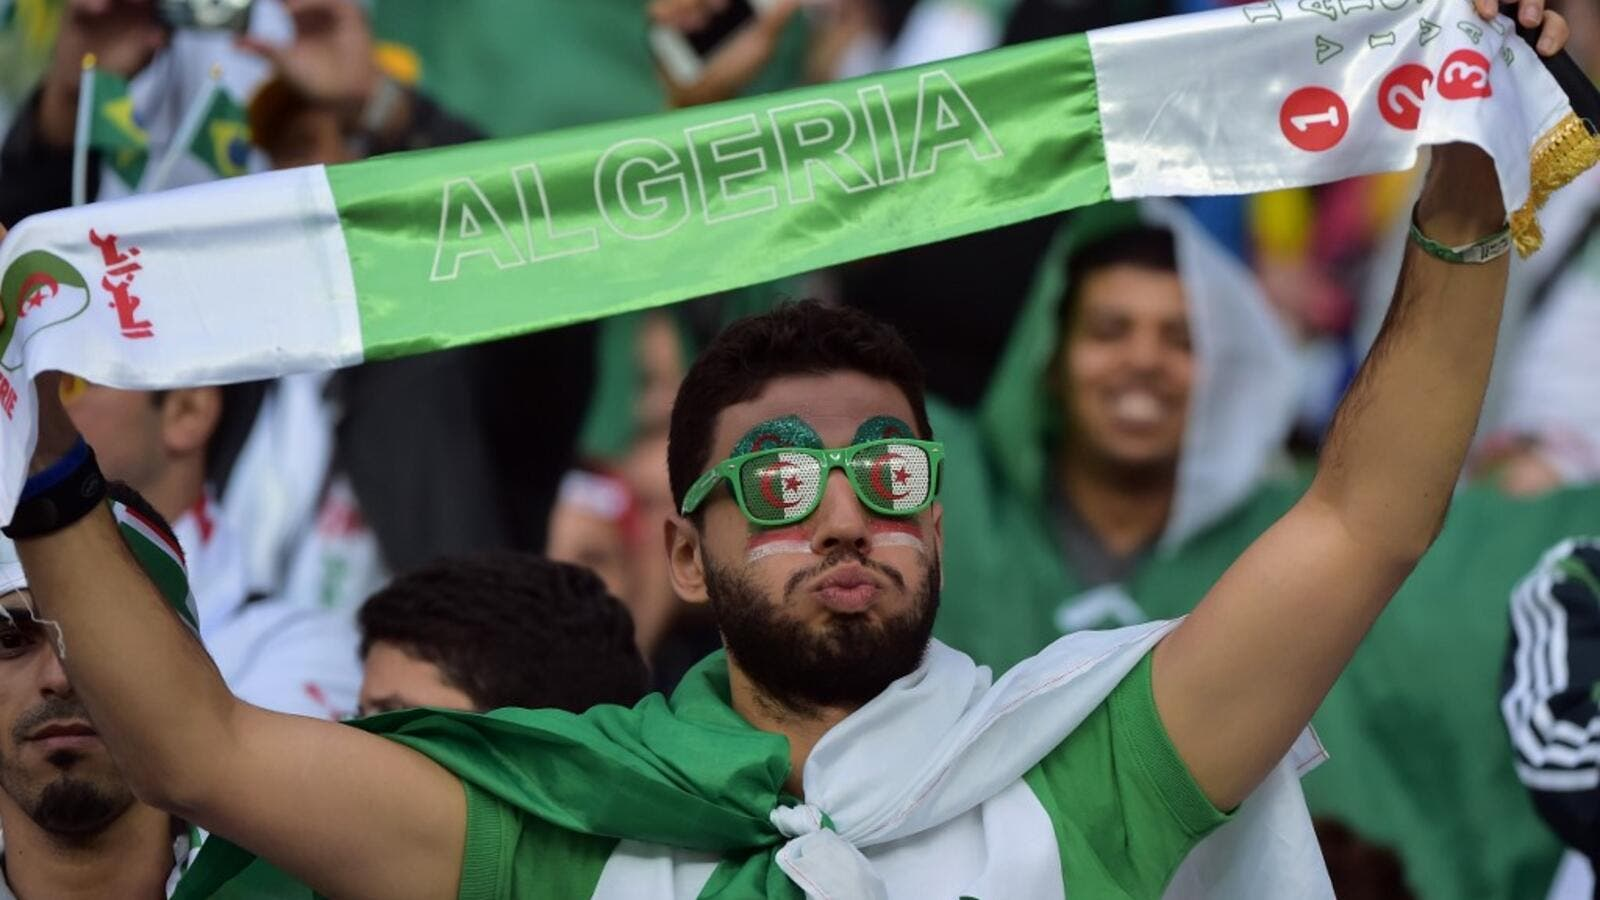 Algerian authorities have chartered ten planes to transport football fans to the African Cup of Nations semi-final game against Nigeria.